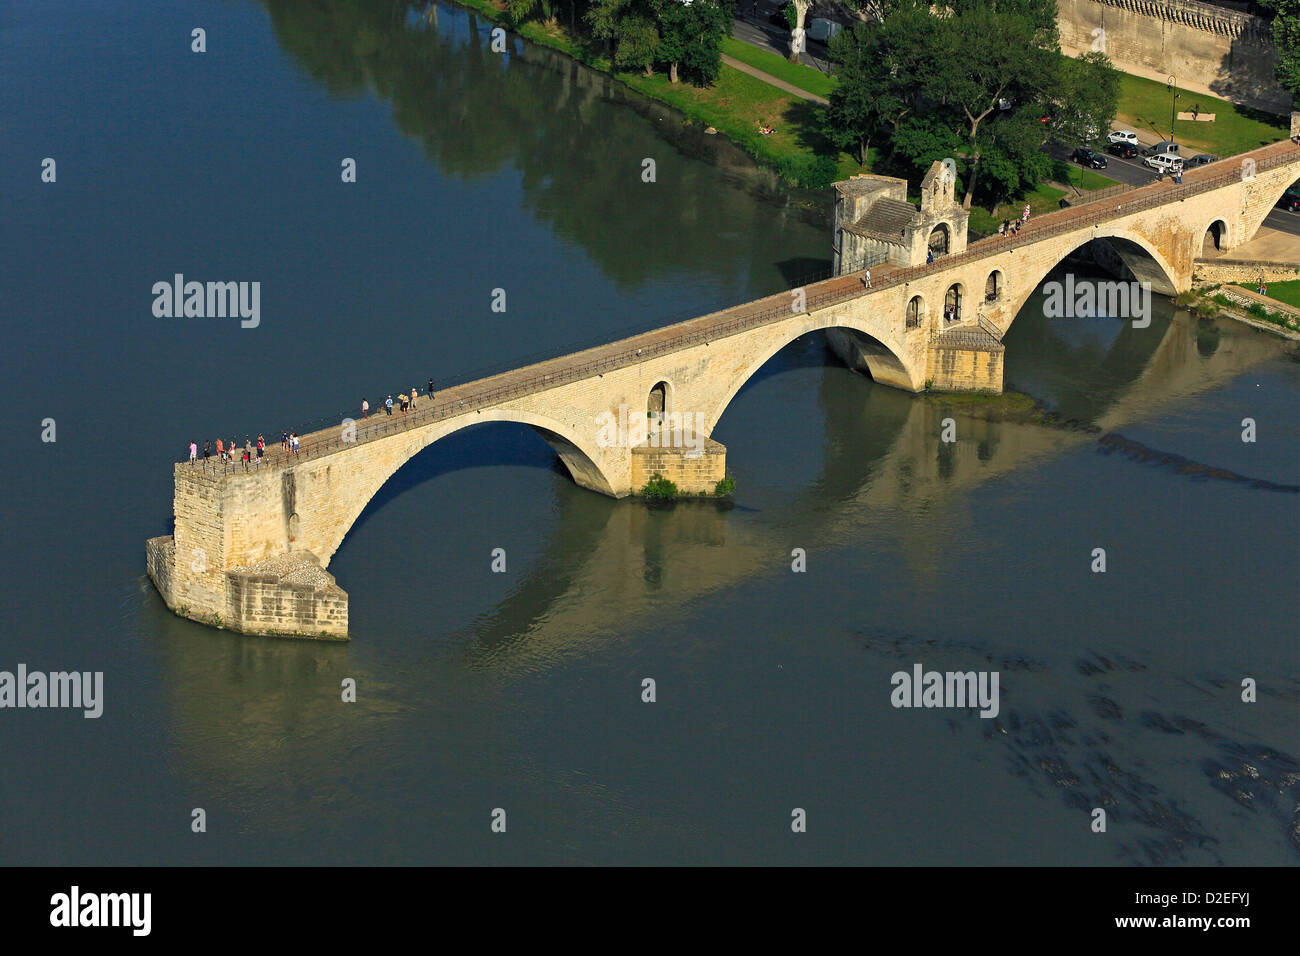 France, Vaucluse (84), Avignon, a city located on the banks of the Rhone, the bridge of Avignon, Benezet Bridge - Stock Image